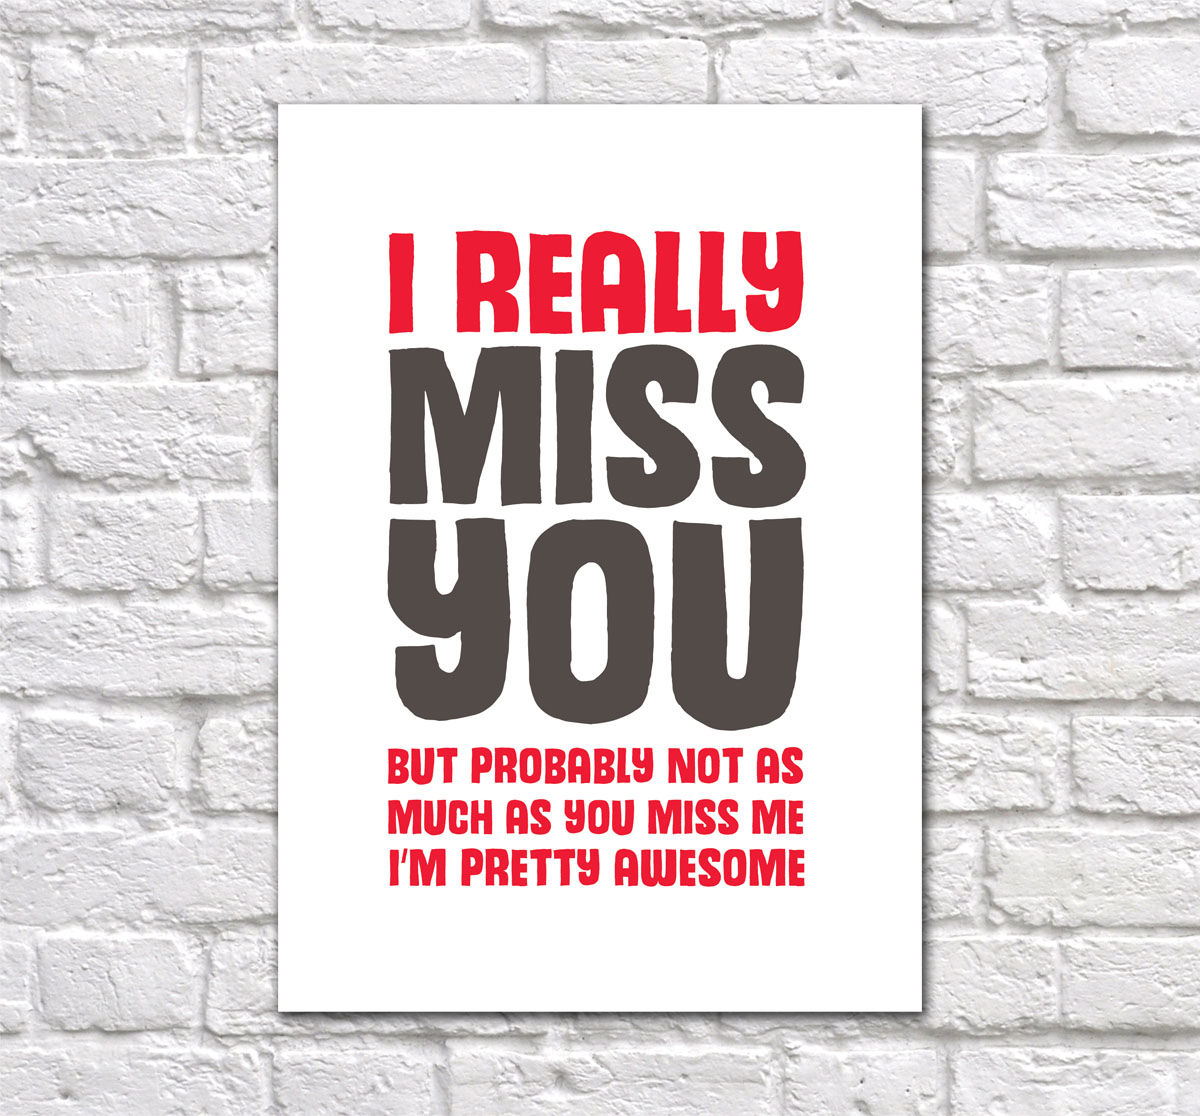 I Really Miss You But Probably Not As Much As You Miss Me